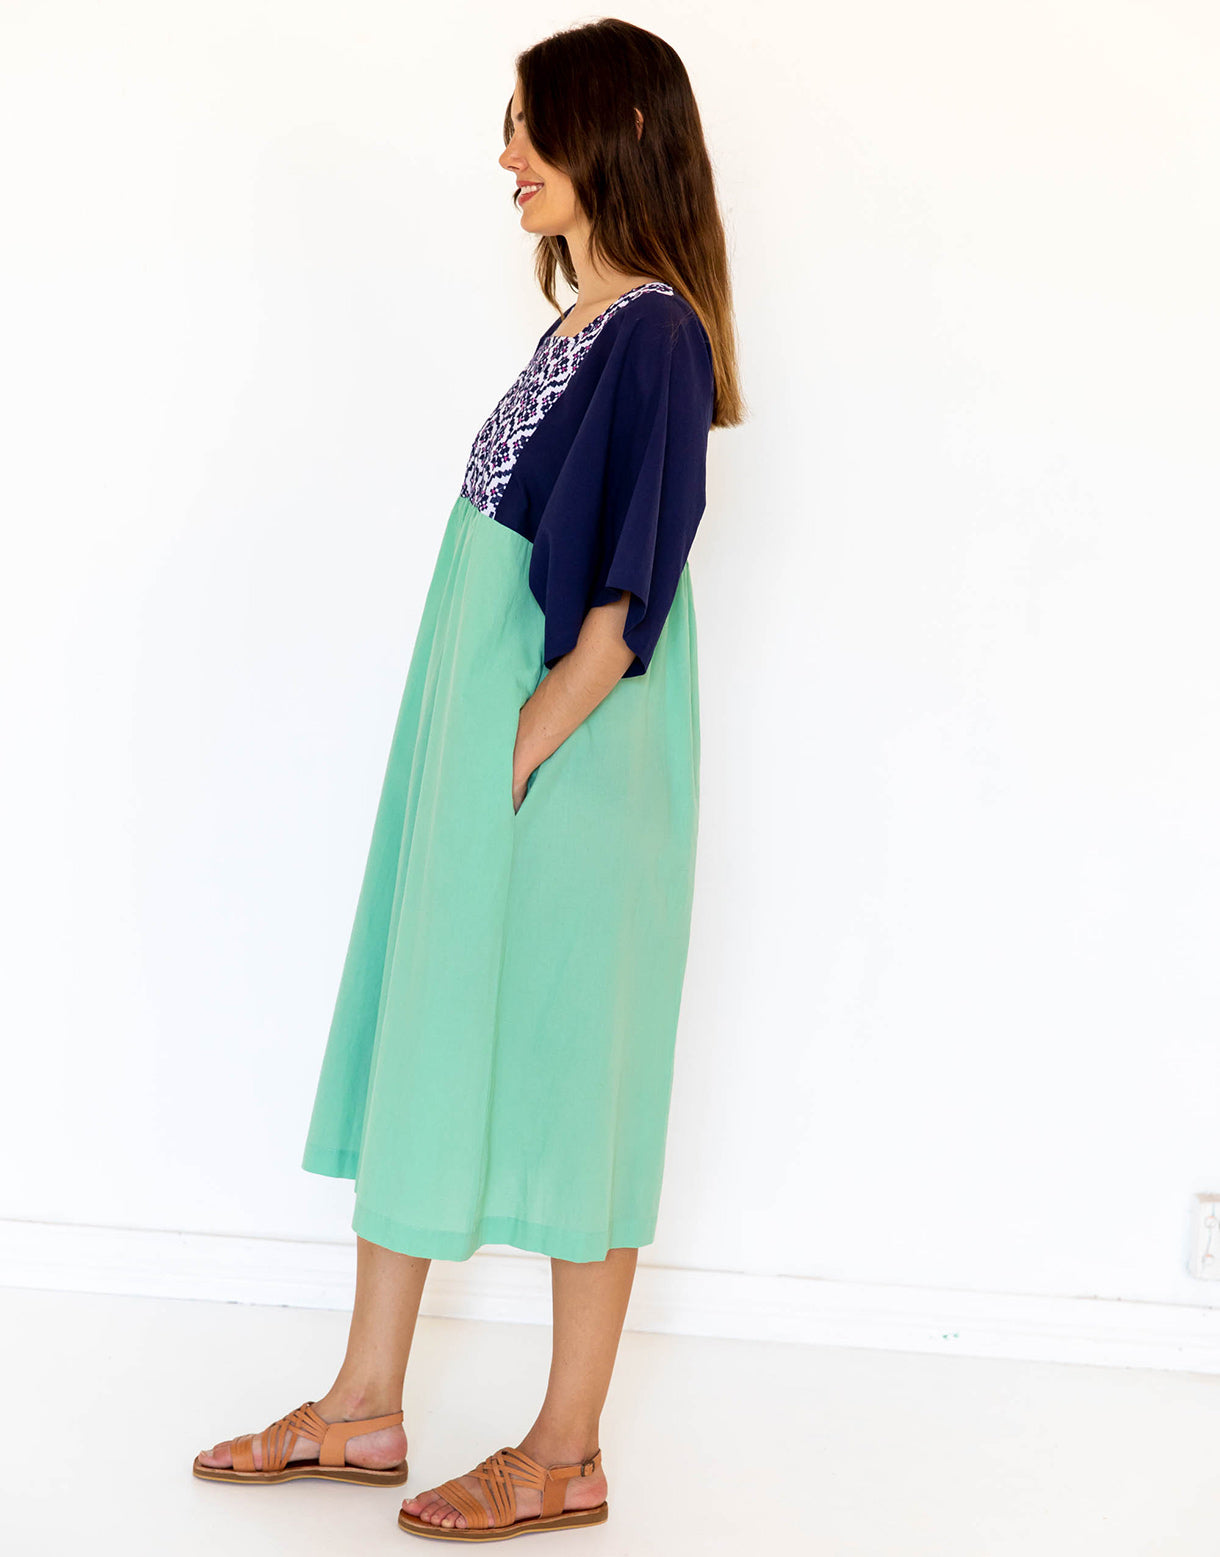 Maisie Dress in Mint *organic cotton